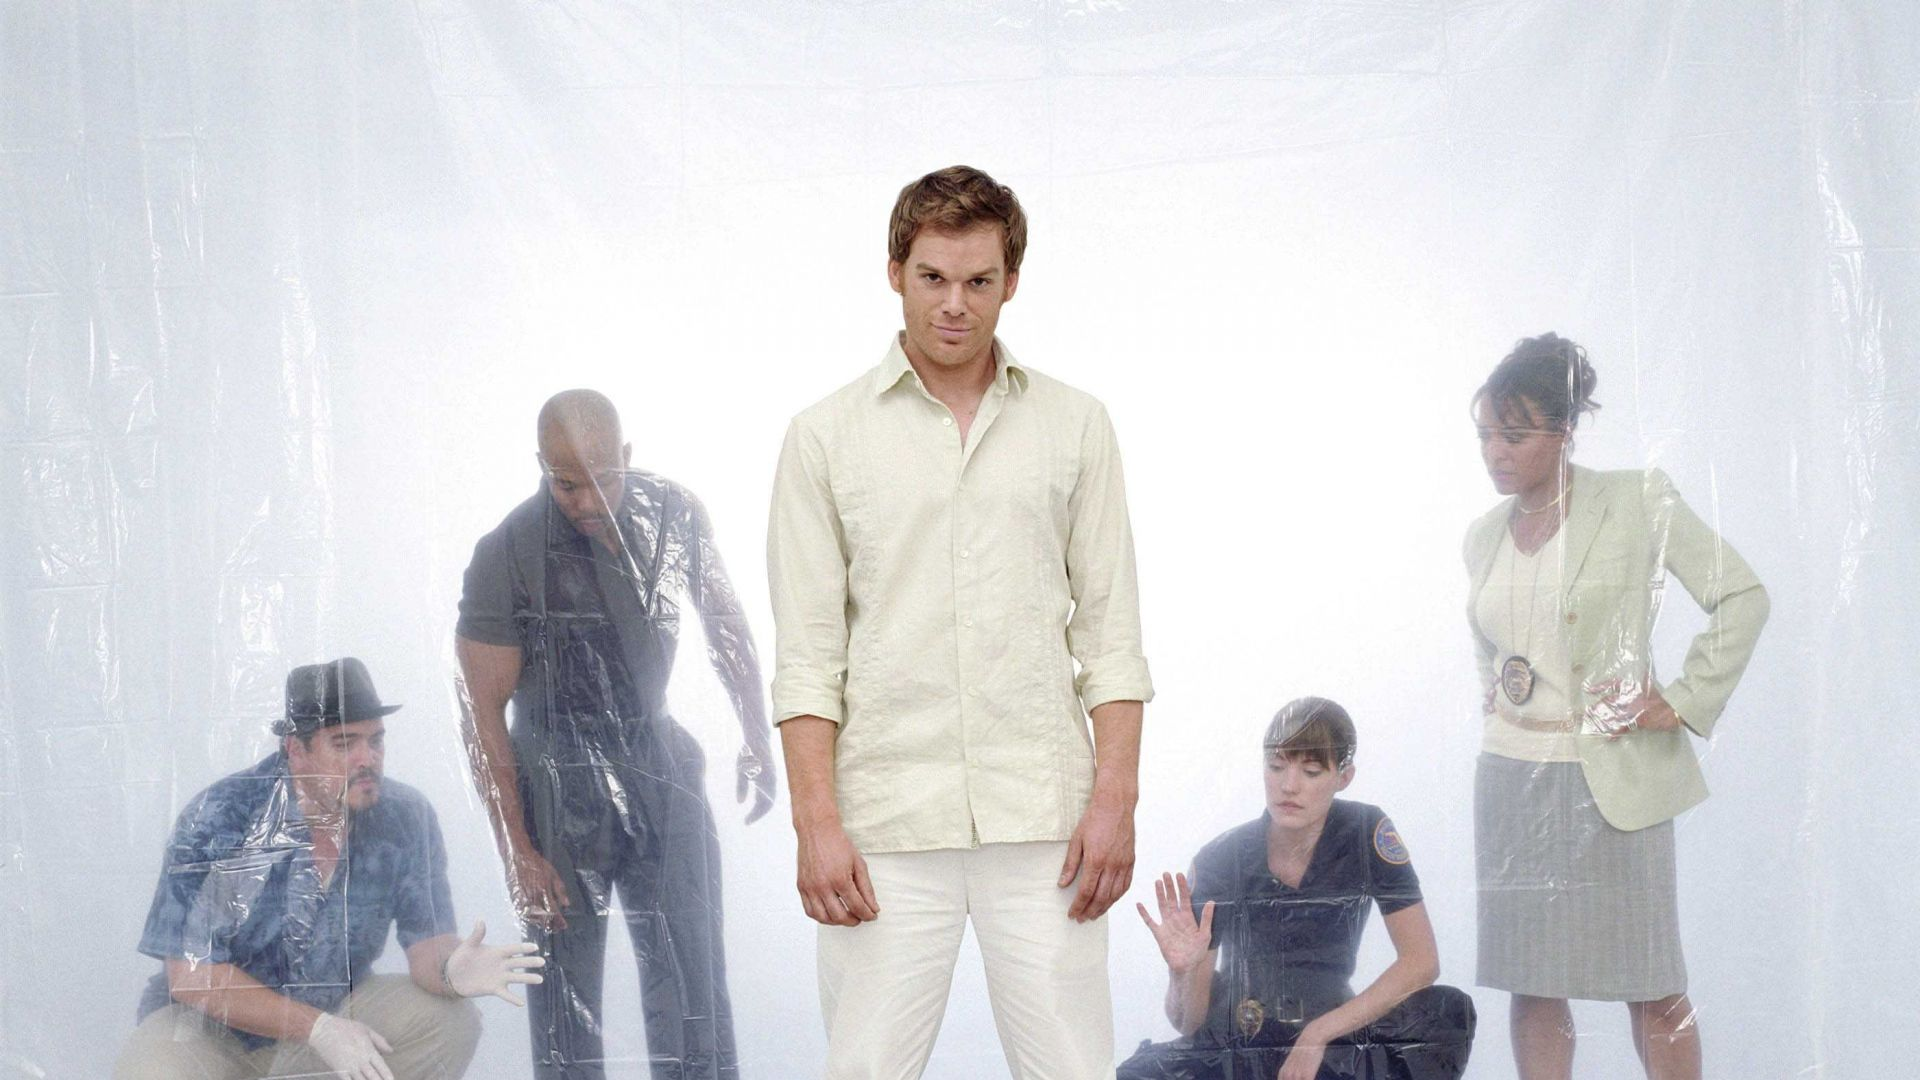 1920x1080 Wallpaper Dexter Morgan Dexter Debra Morgan Angel Batista Maria Laguerta James Doakes Michael Hall Eric King David Zayas Lauren Vel Hd 1080p